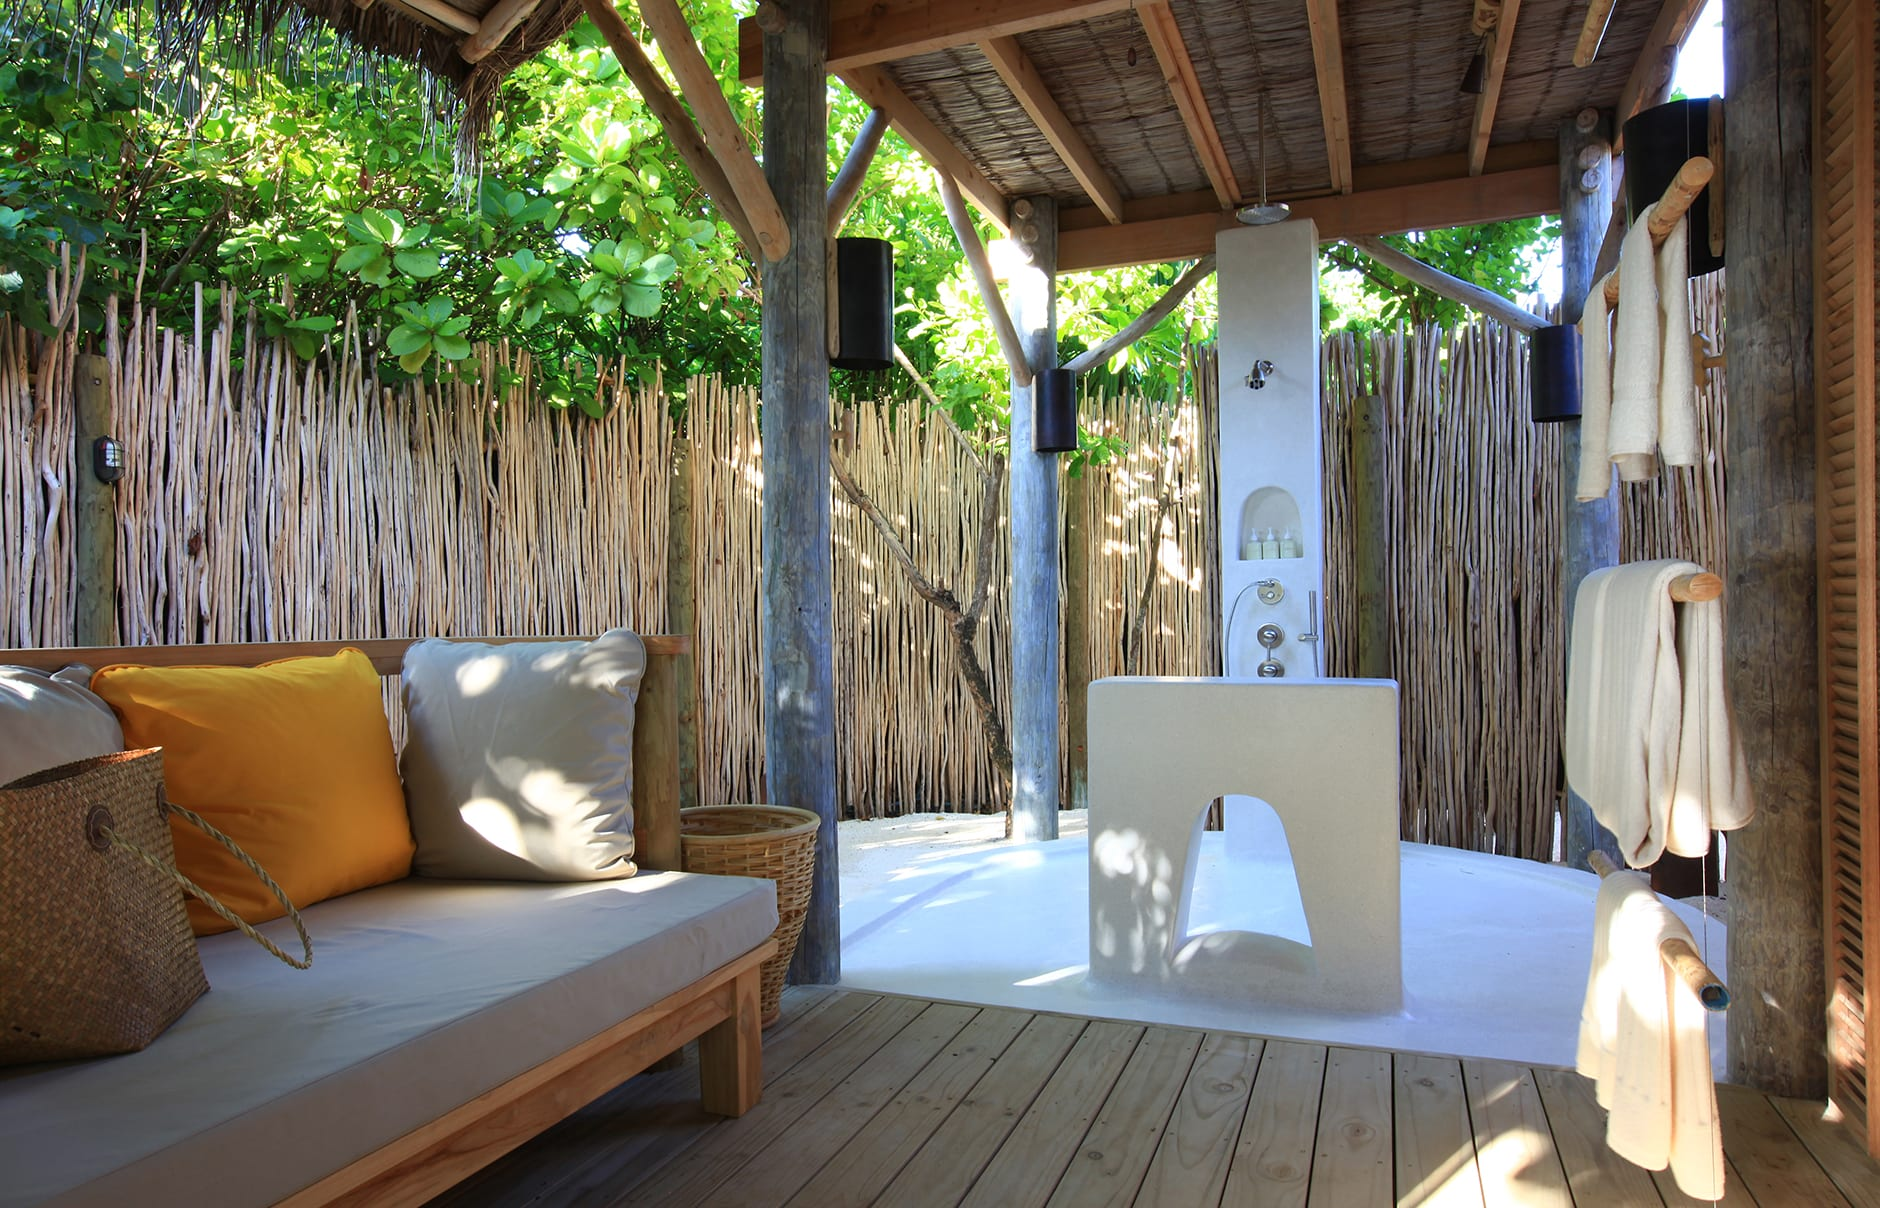 Beach Villa bathroom. Six Senses Laamu, Maldives. © Six Senses Resorts & Spas